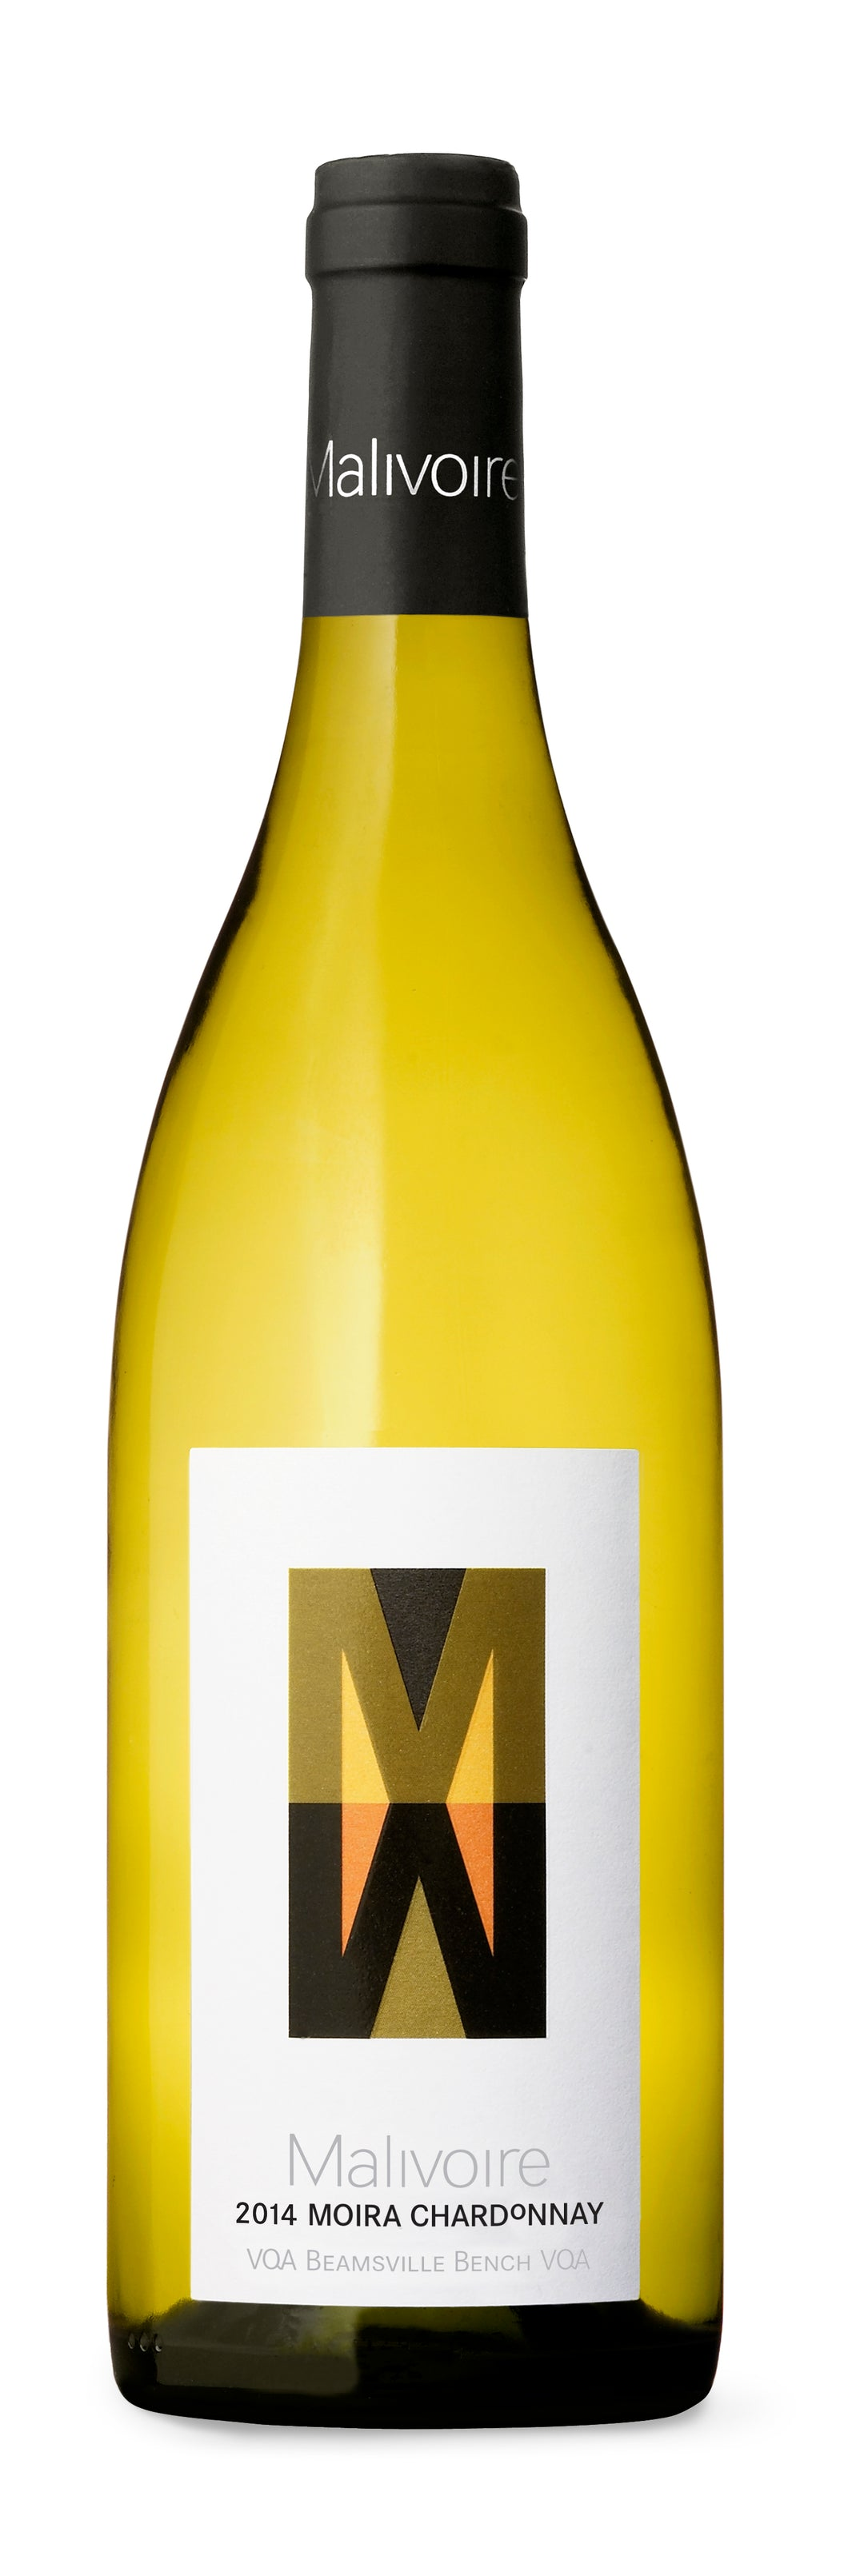 LIBRARY 2014 Moira Chardonnay INSIDERS